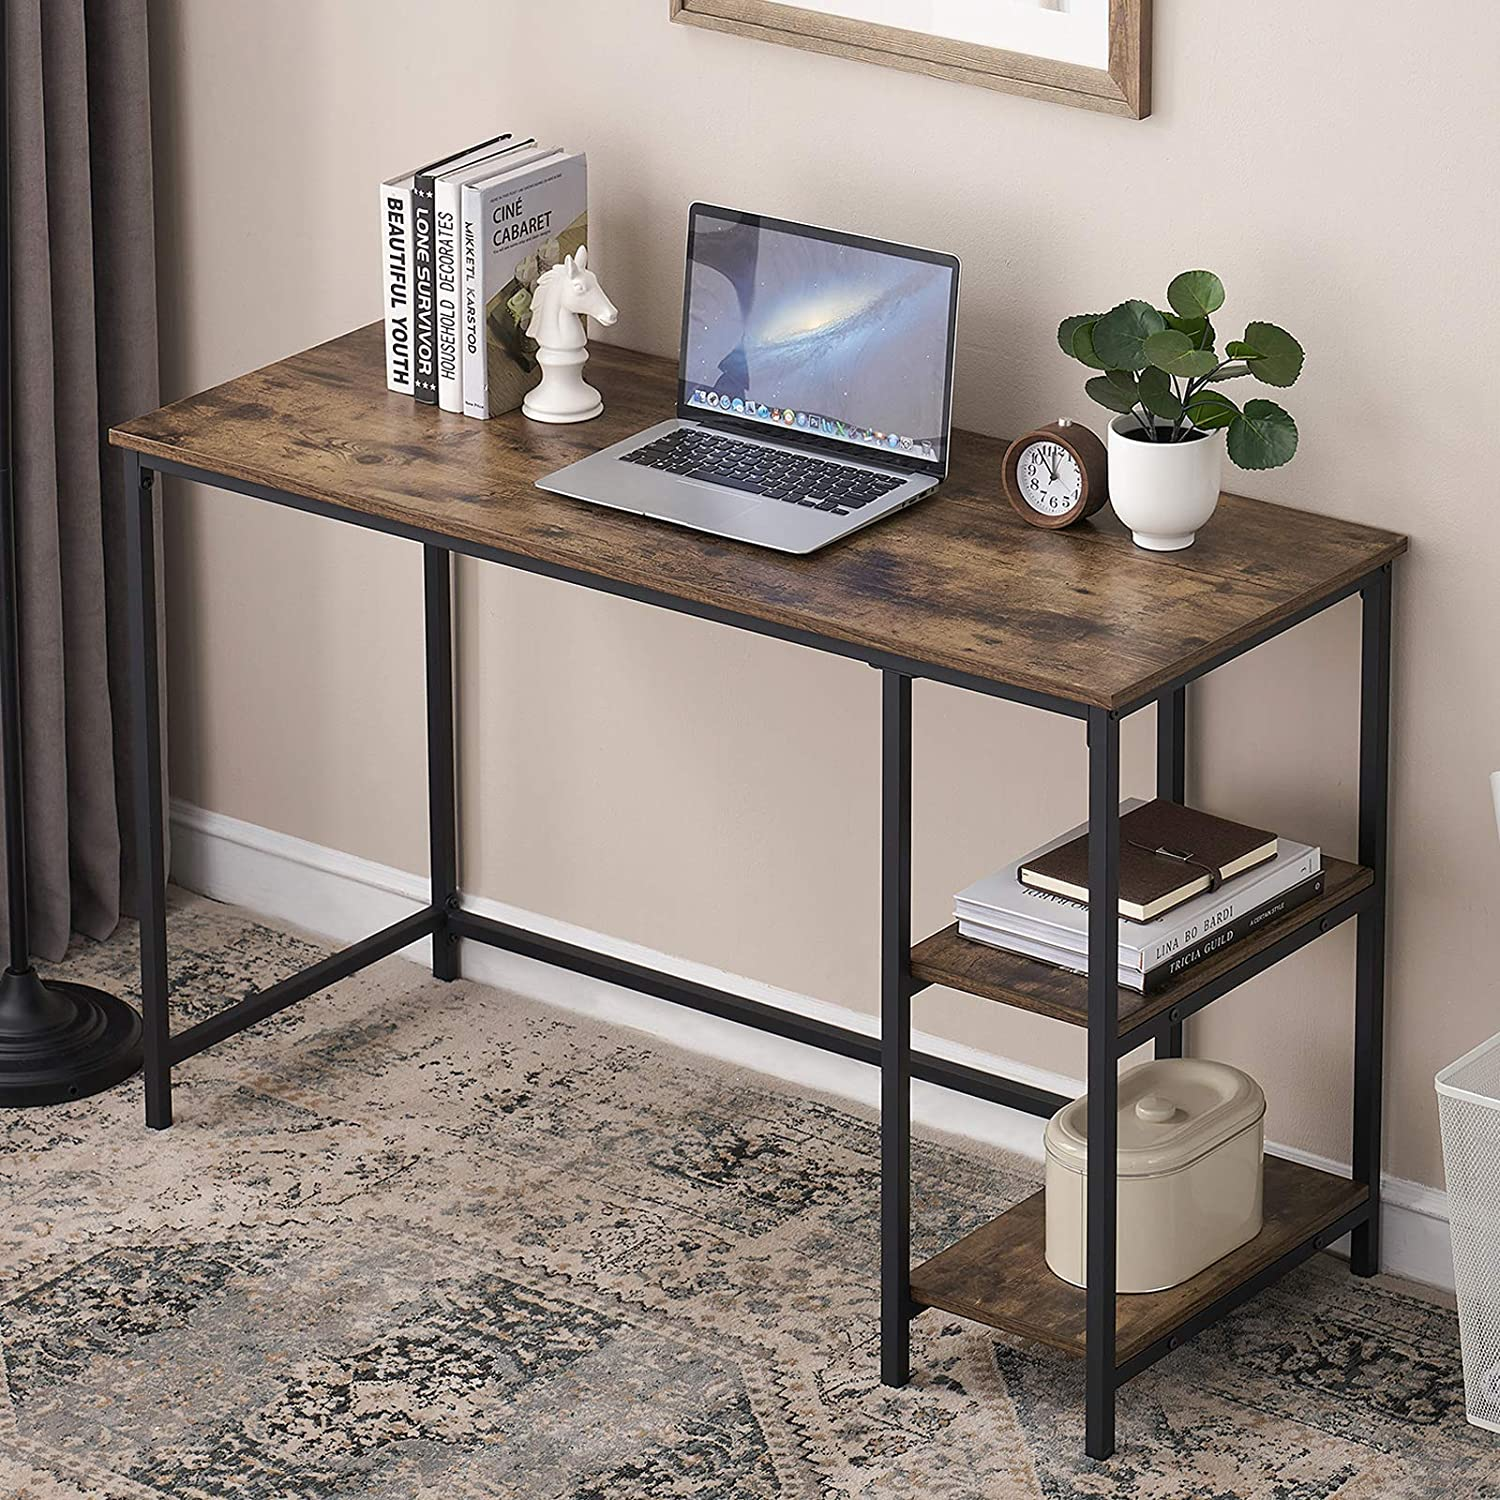 Industrial Super popular specialty store Spring new work one after another Computer Desk for Small Space with Office Home